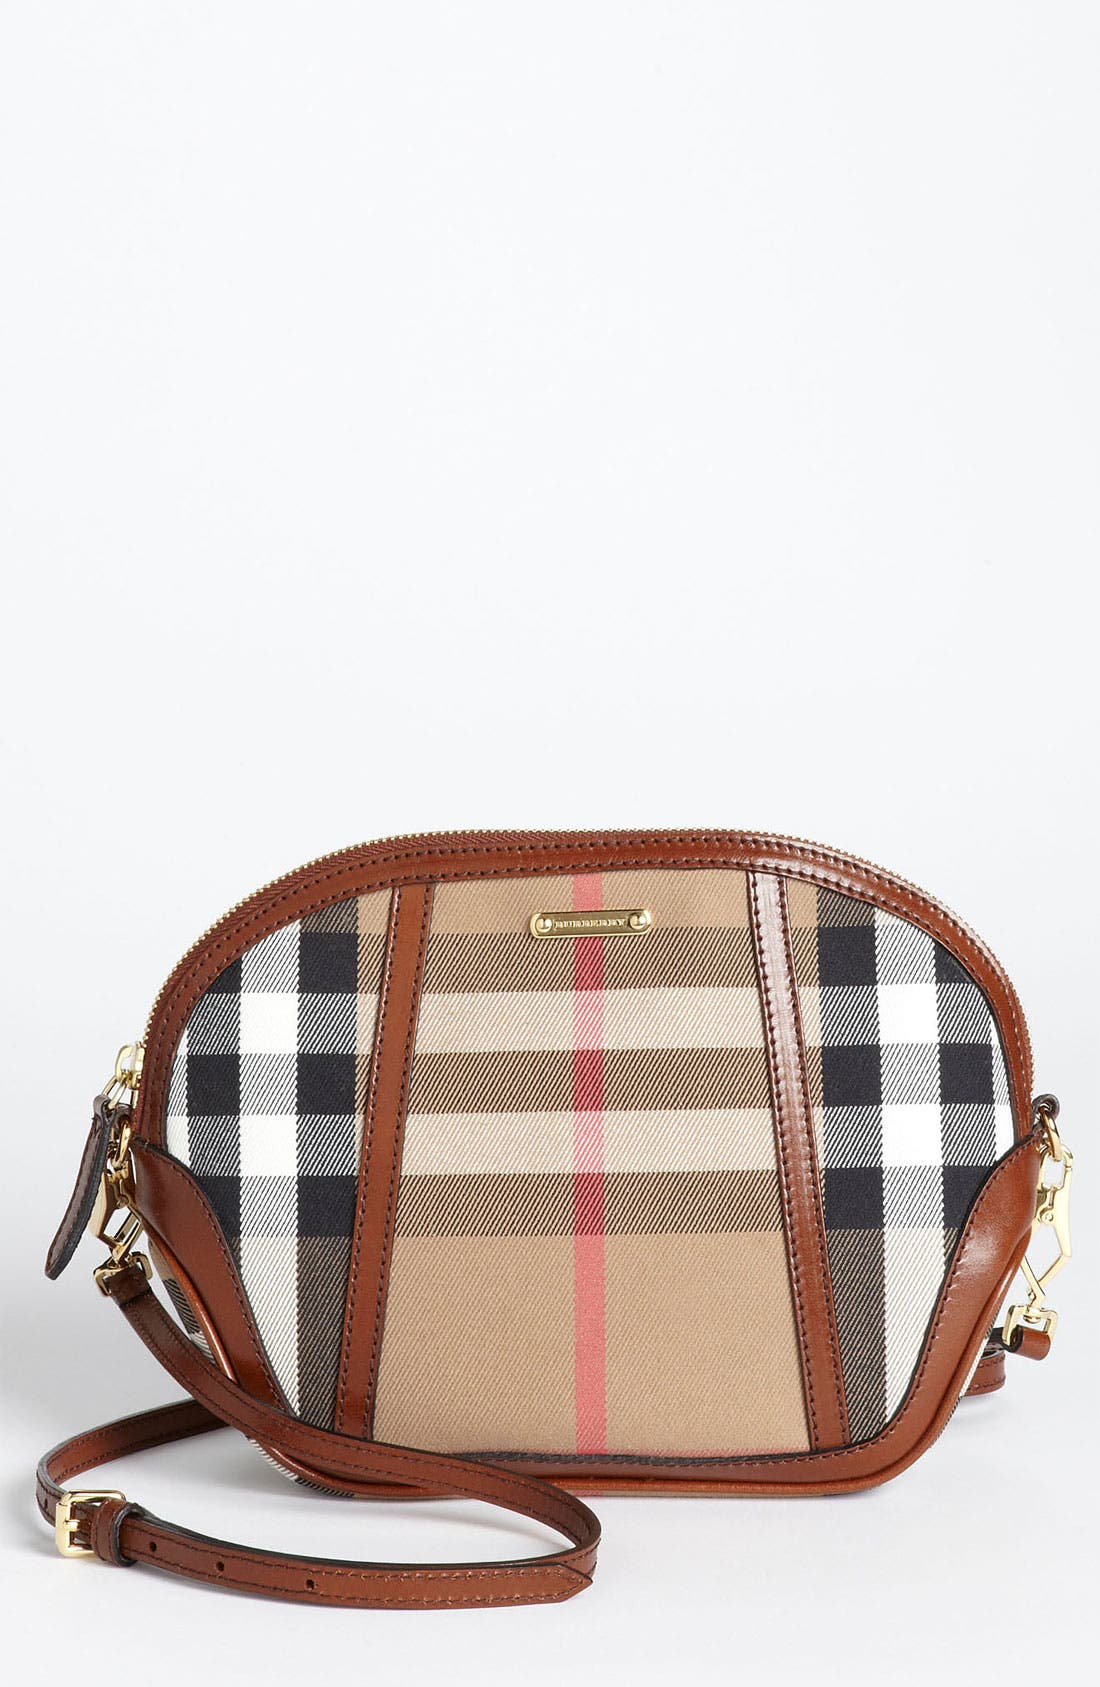 Main Image - Burberry 'House Check' Crossbody Bag